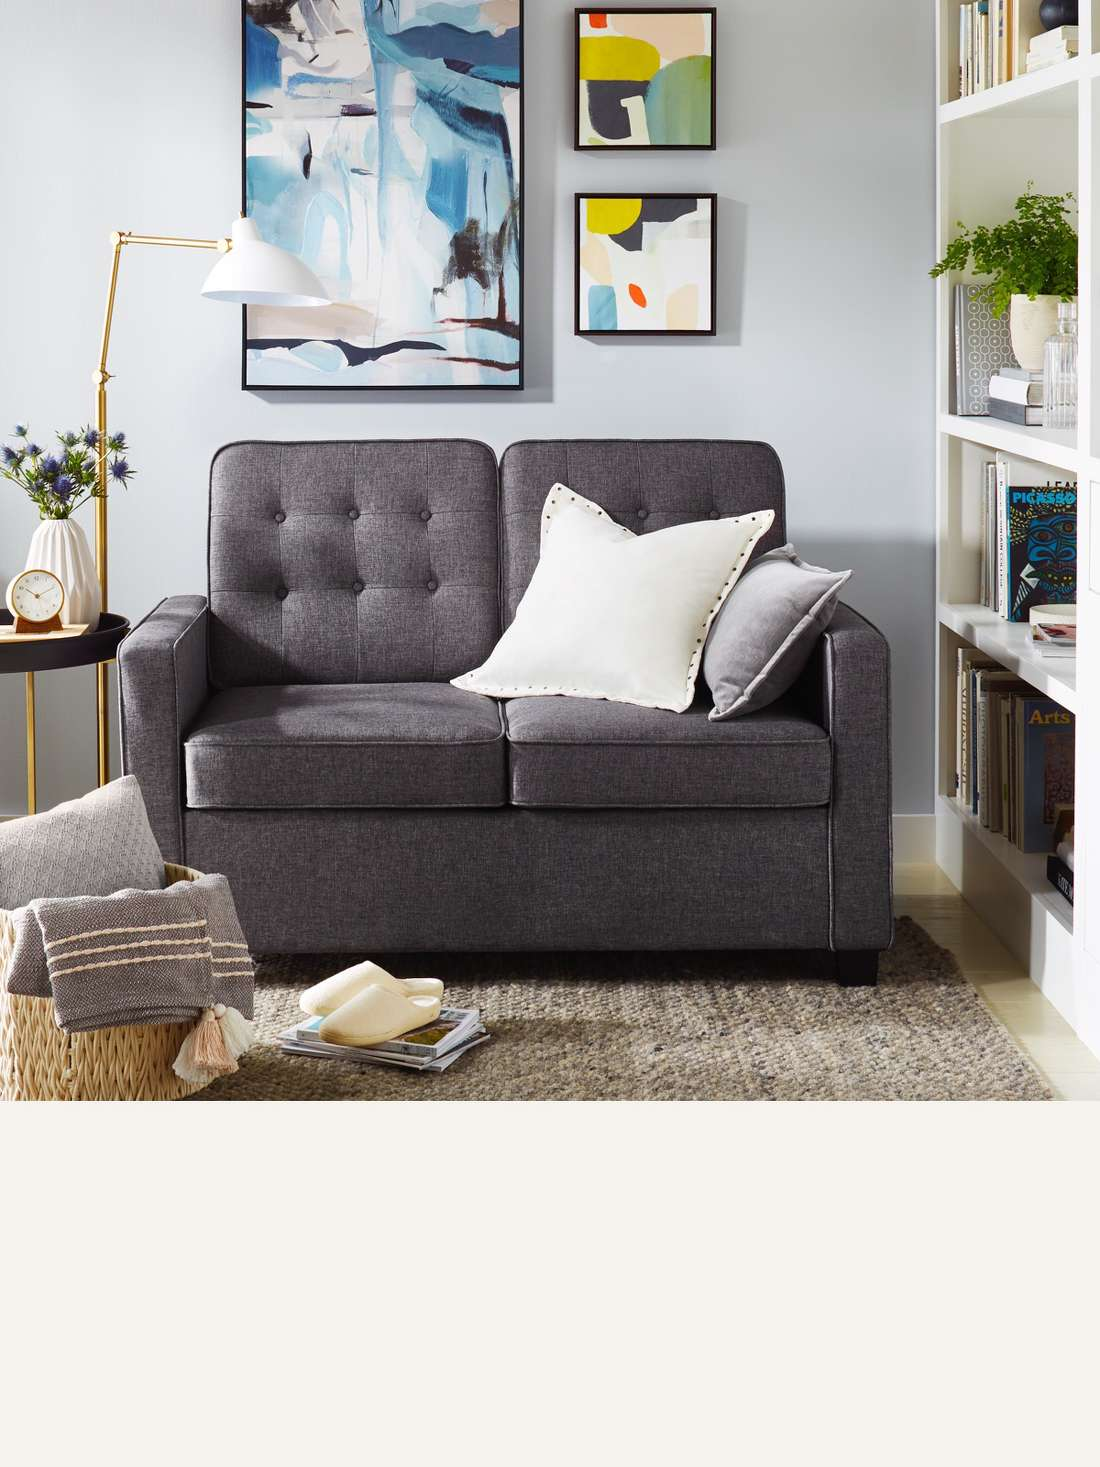 Sleeper Sofa Also Known As A Pull Out Is Functional Way To Turn Study Into Guest Room Browse Sleepers